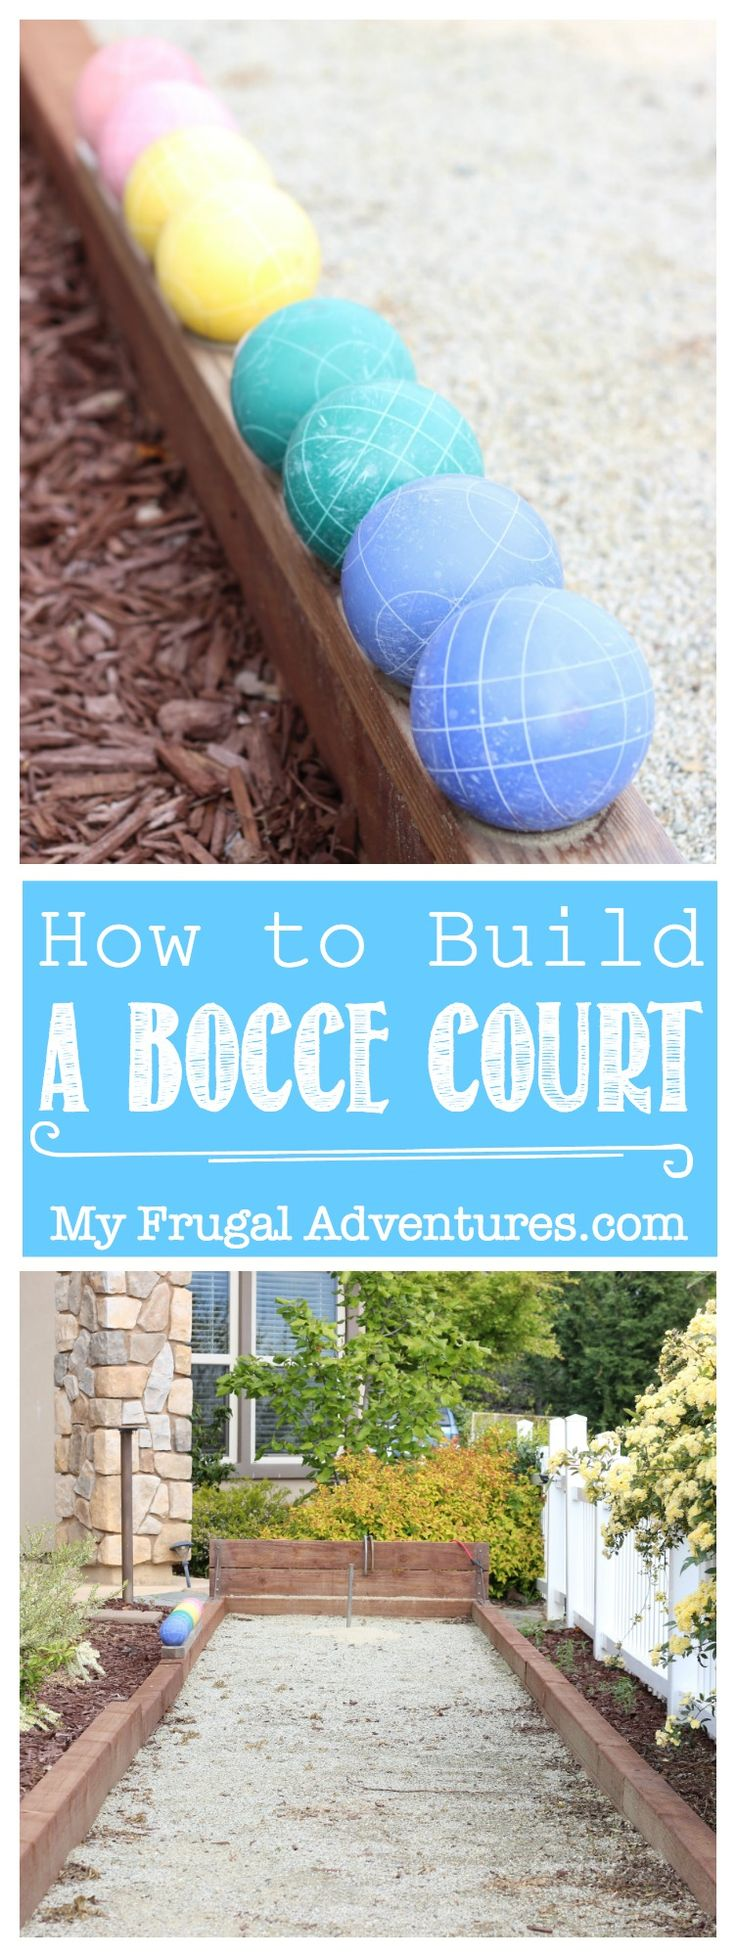 How to build a Bocce court in your backyard!  Perfect for entertaining or family fun!